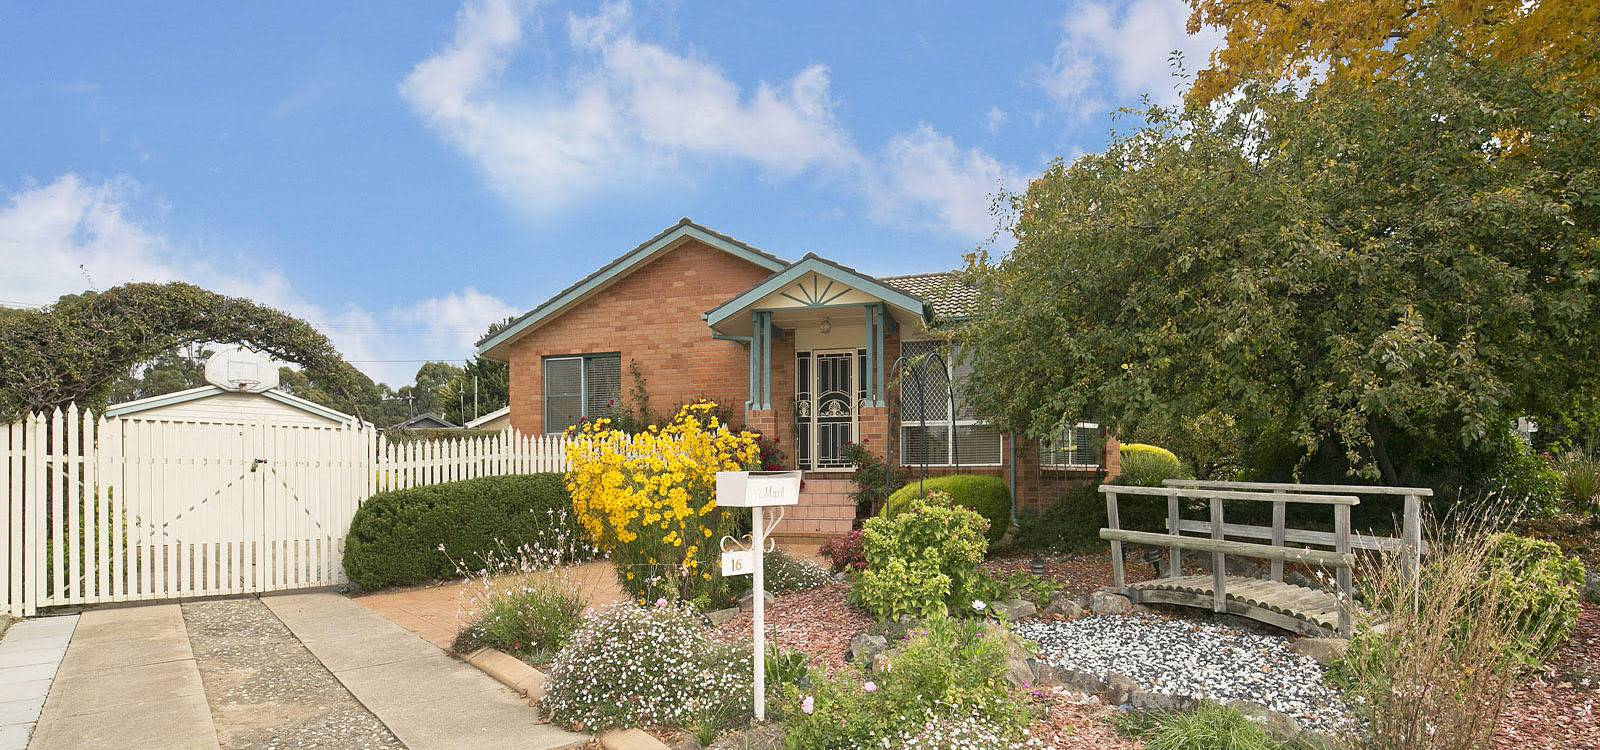 16 Chappell Street LYONS, ACT 2606 - photo 1